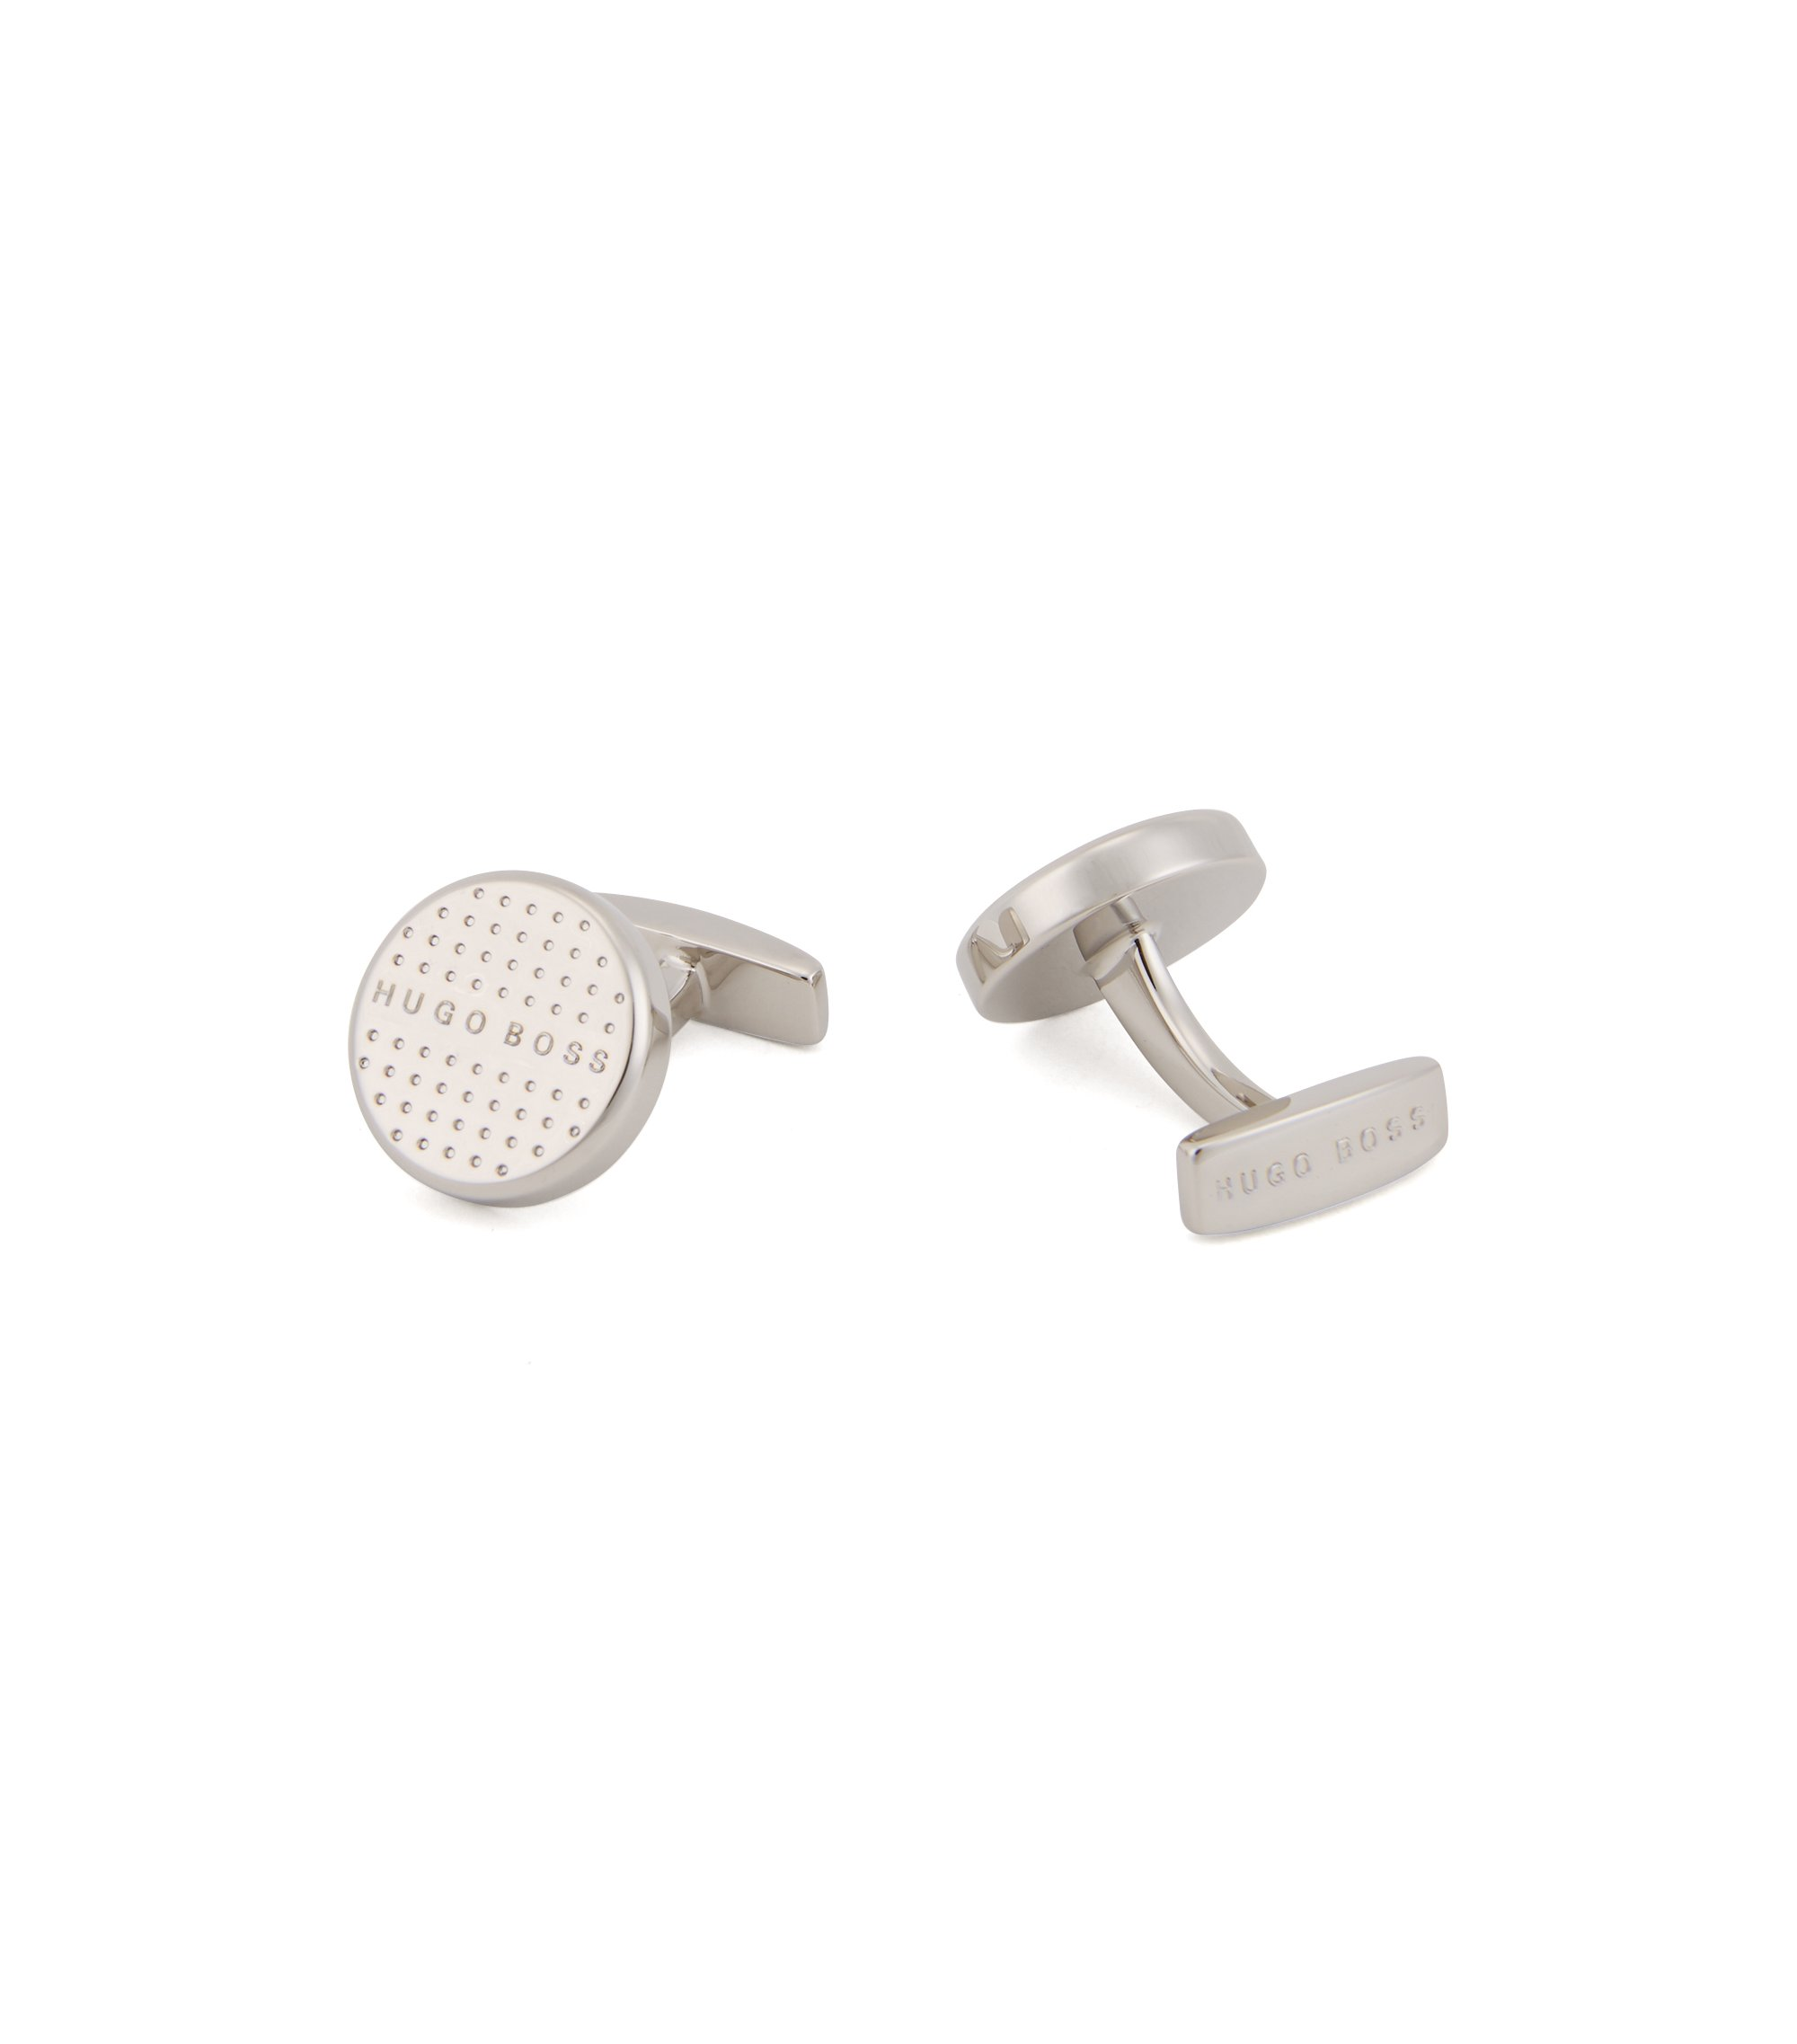 Hand-polished brass cufflinks with engraved polka dots, Silver